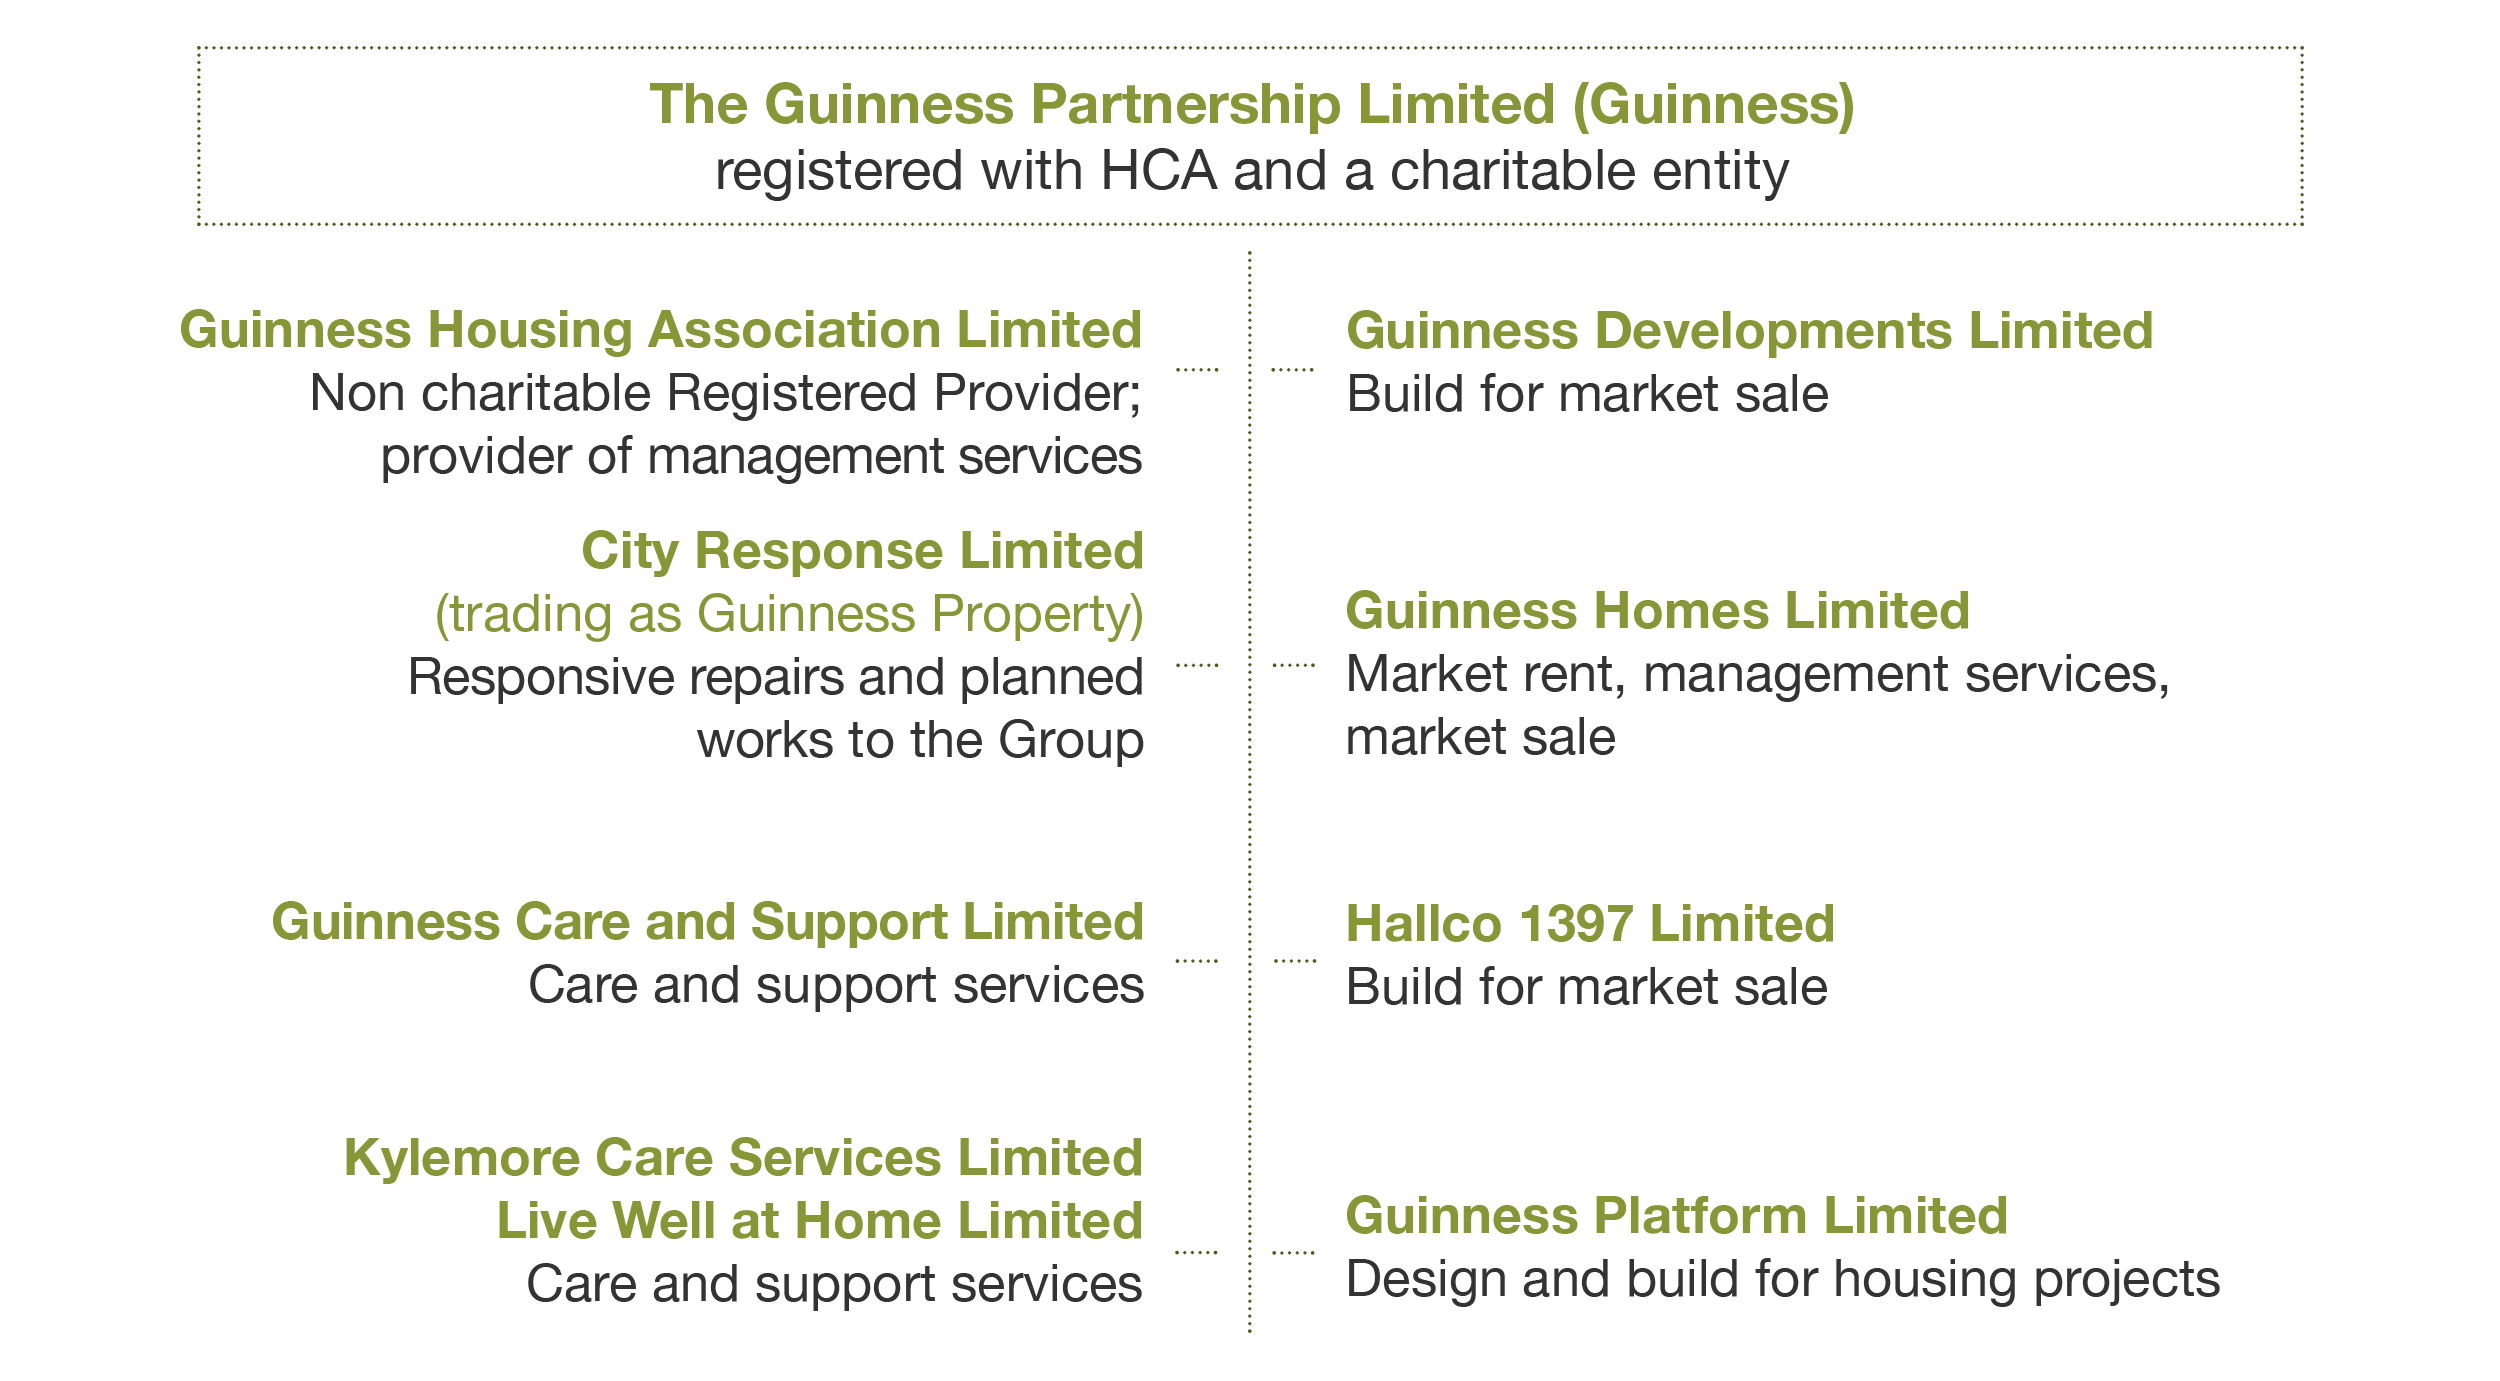 The Guinness Partnership structure chart